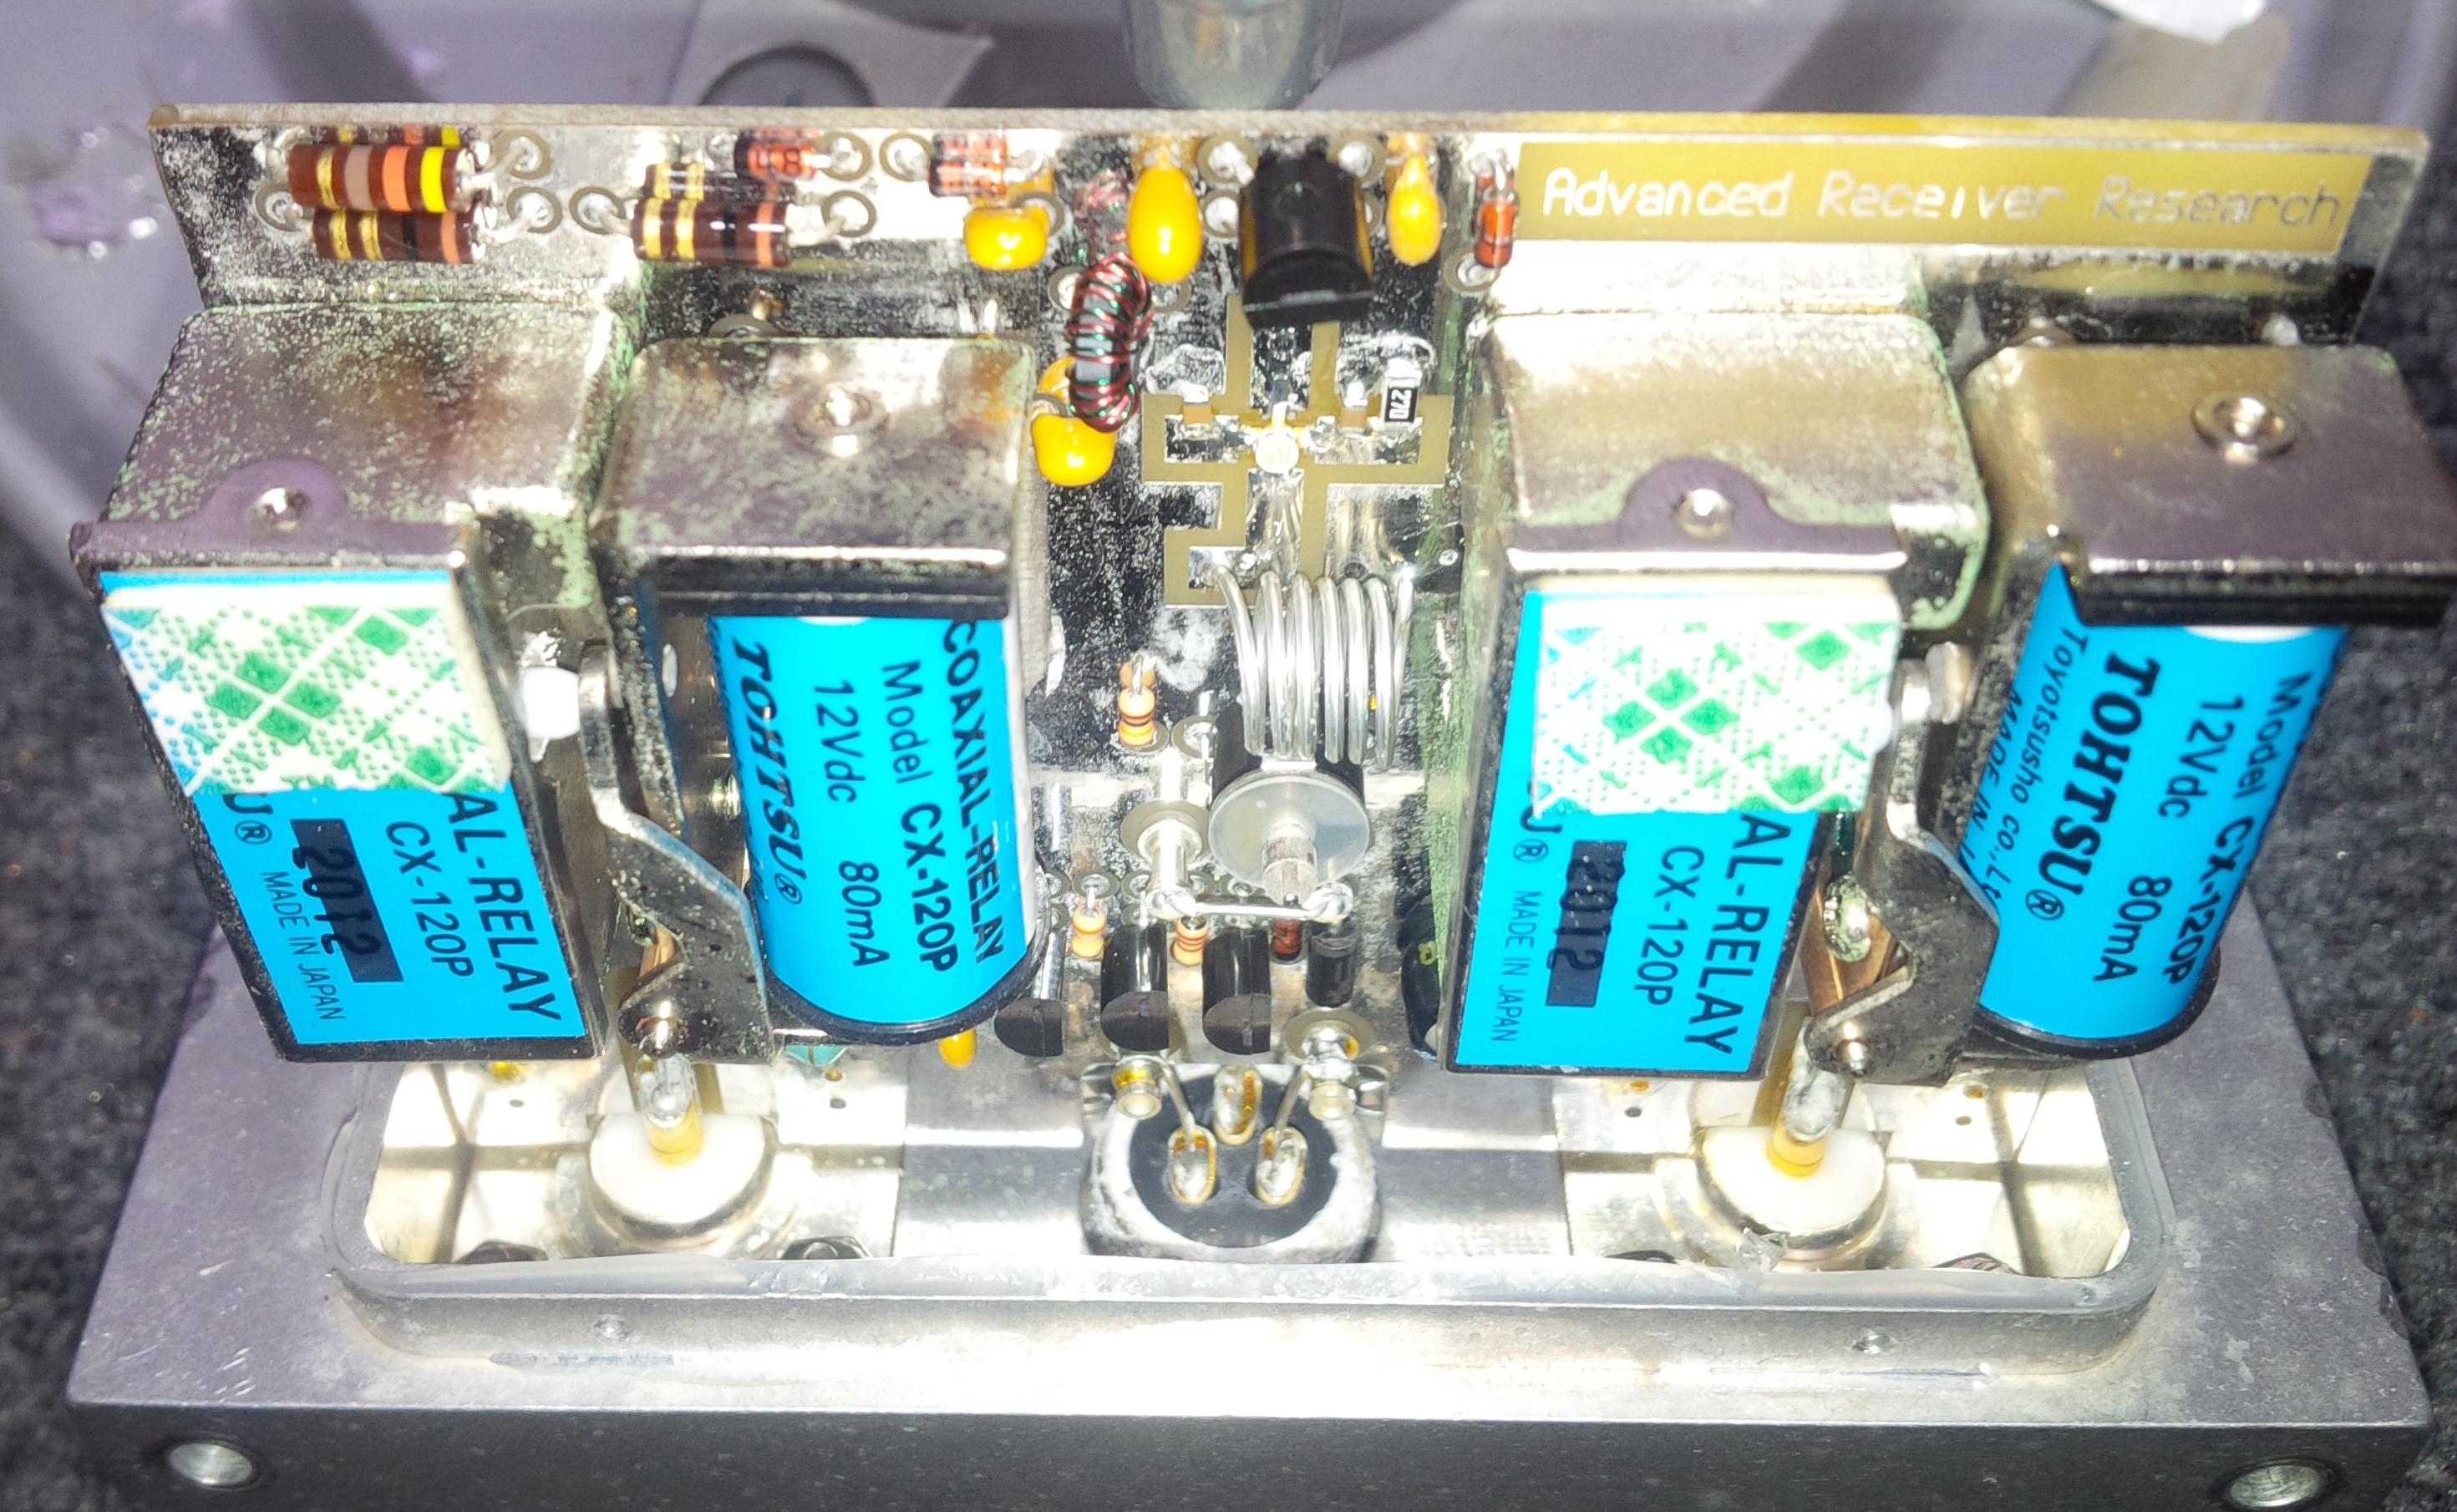 Sharp Shaftesbury High Altitude Robotics Project Uhf Preamplifier Both 2 Metre Preamps Were Similarly Affected Two 70 Cm Are Still On The Towers All Four Purchased In Late 2013 And They Just Off